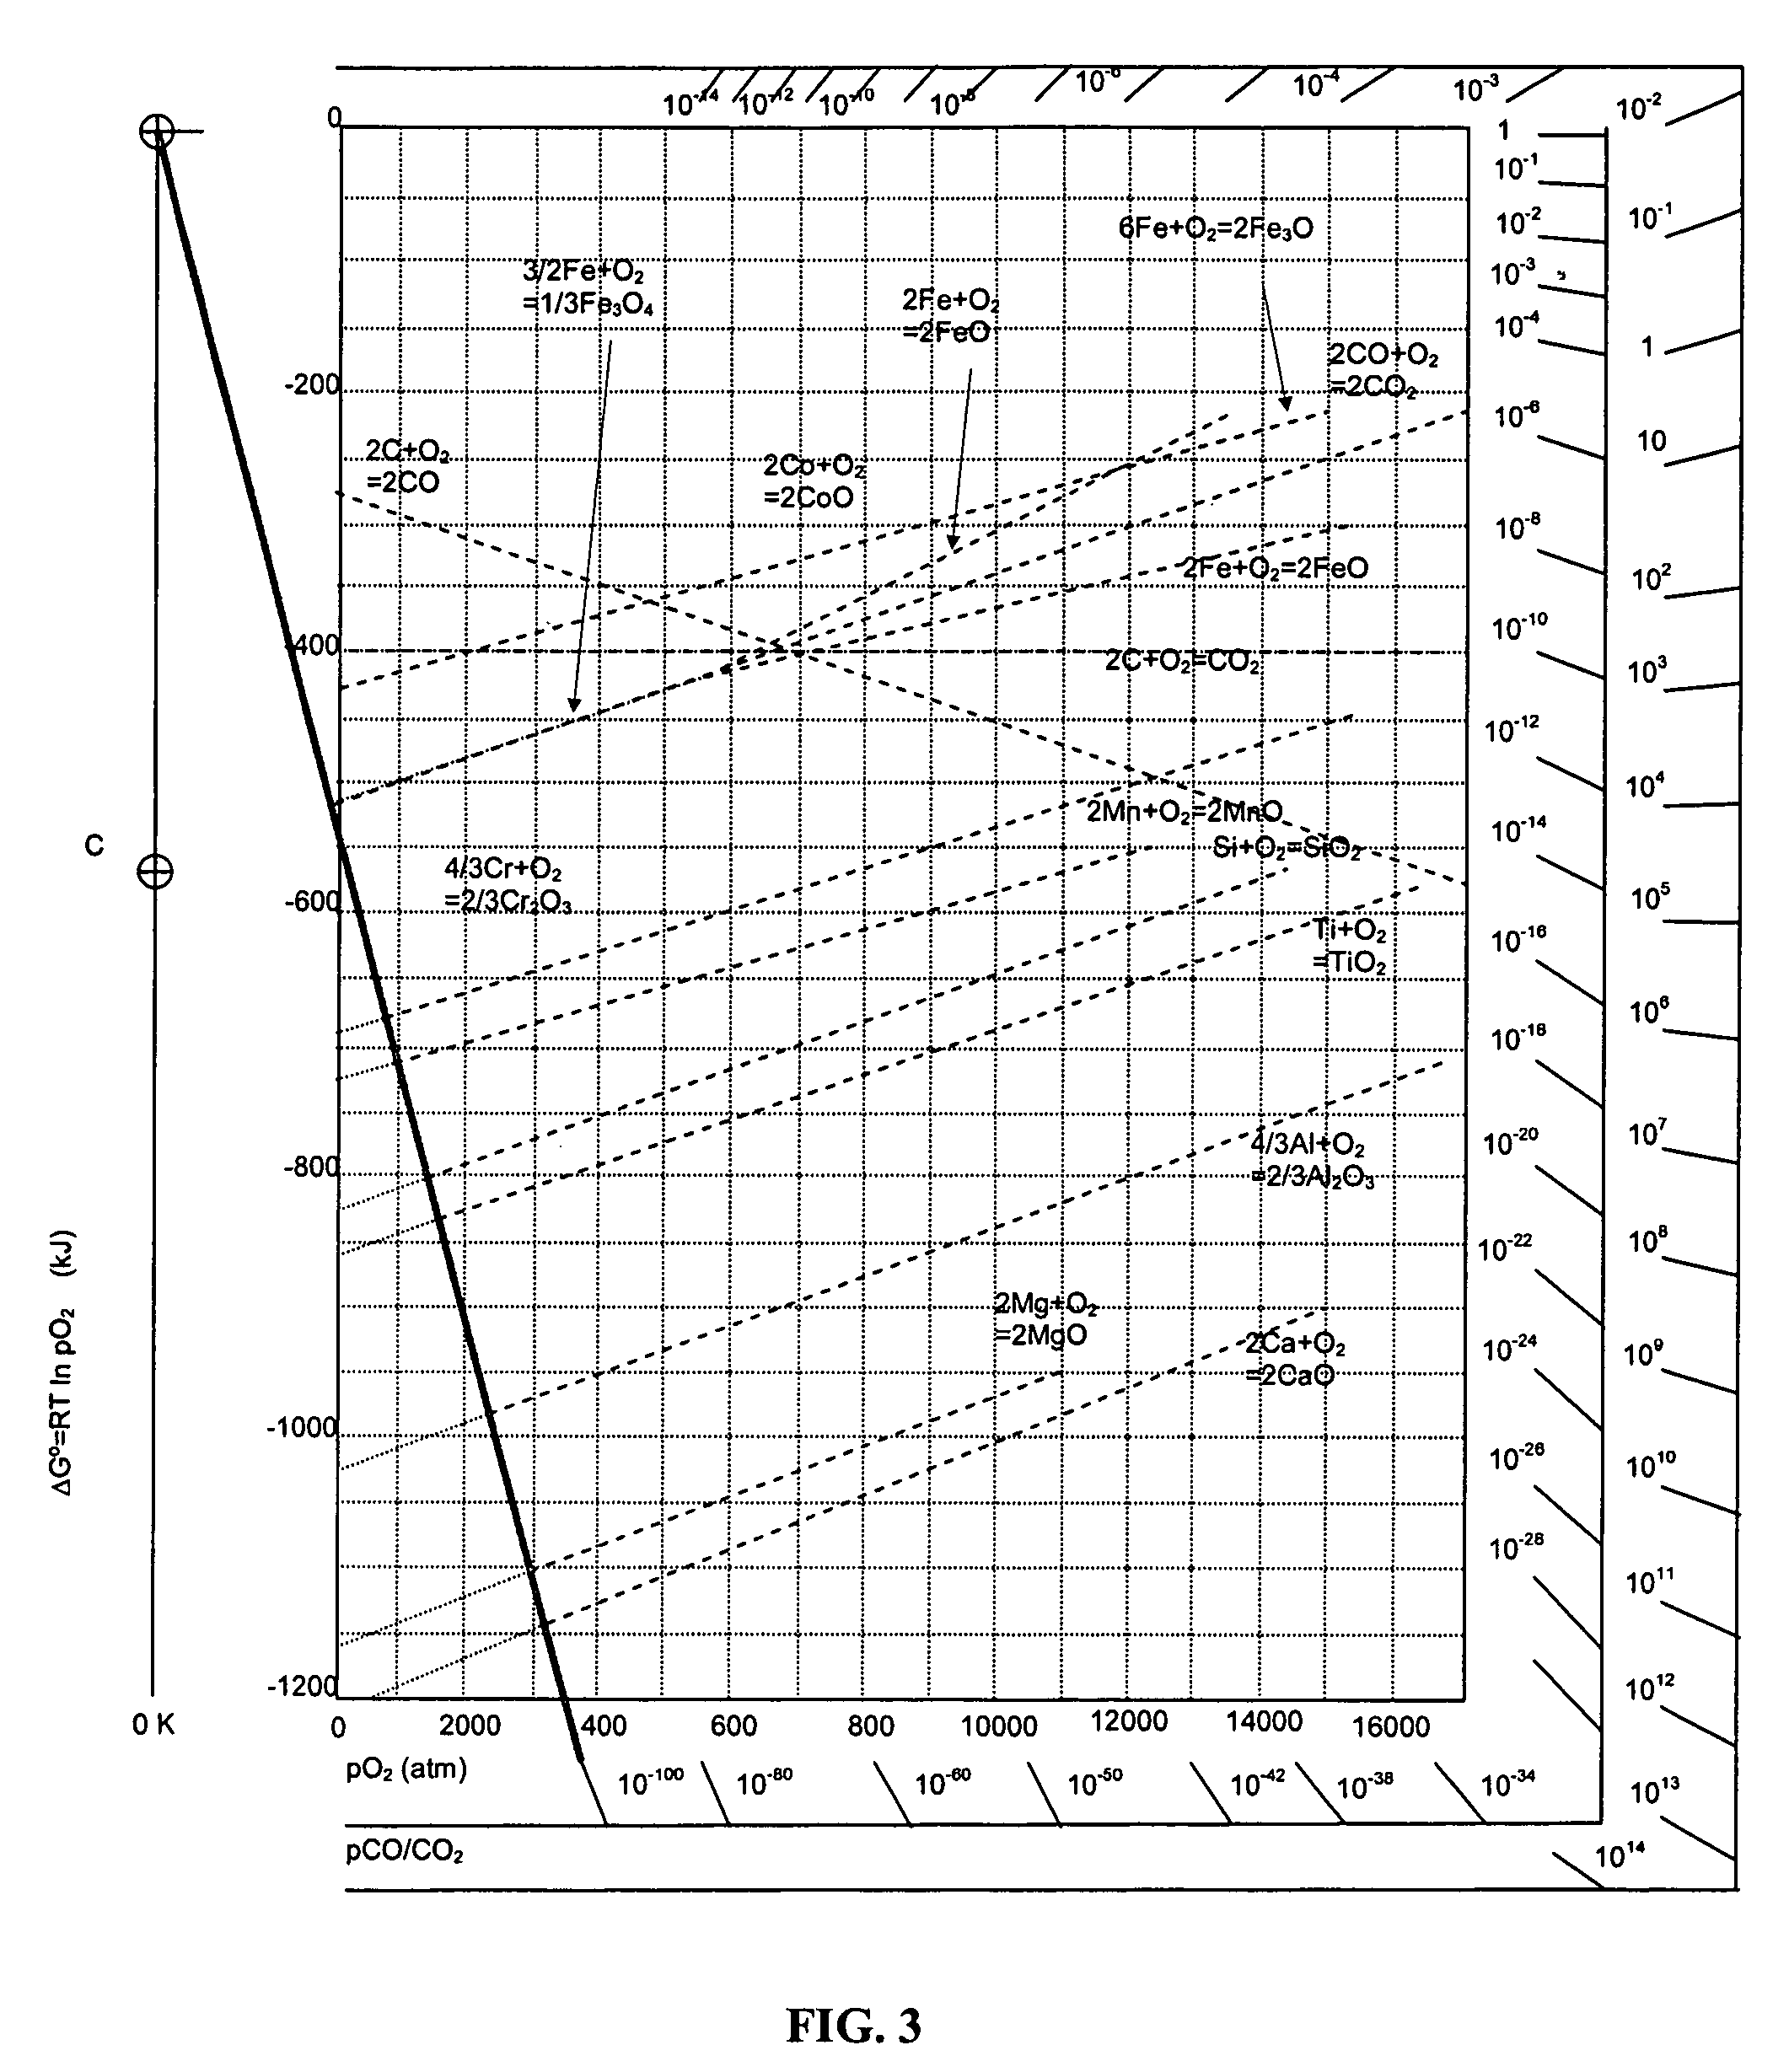 Hd wallpapers ellingham diagram wall00mobile get free high quality hd wallpapers ellingham diagram ccuart Choice Image